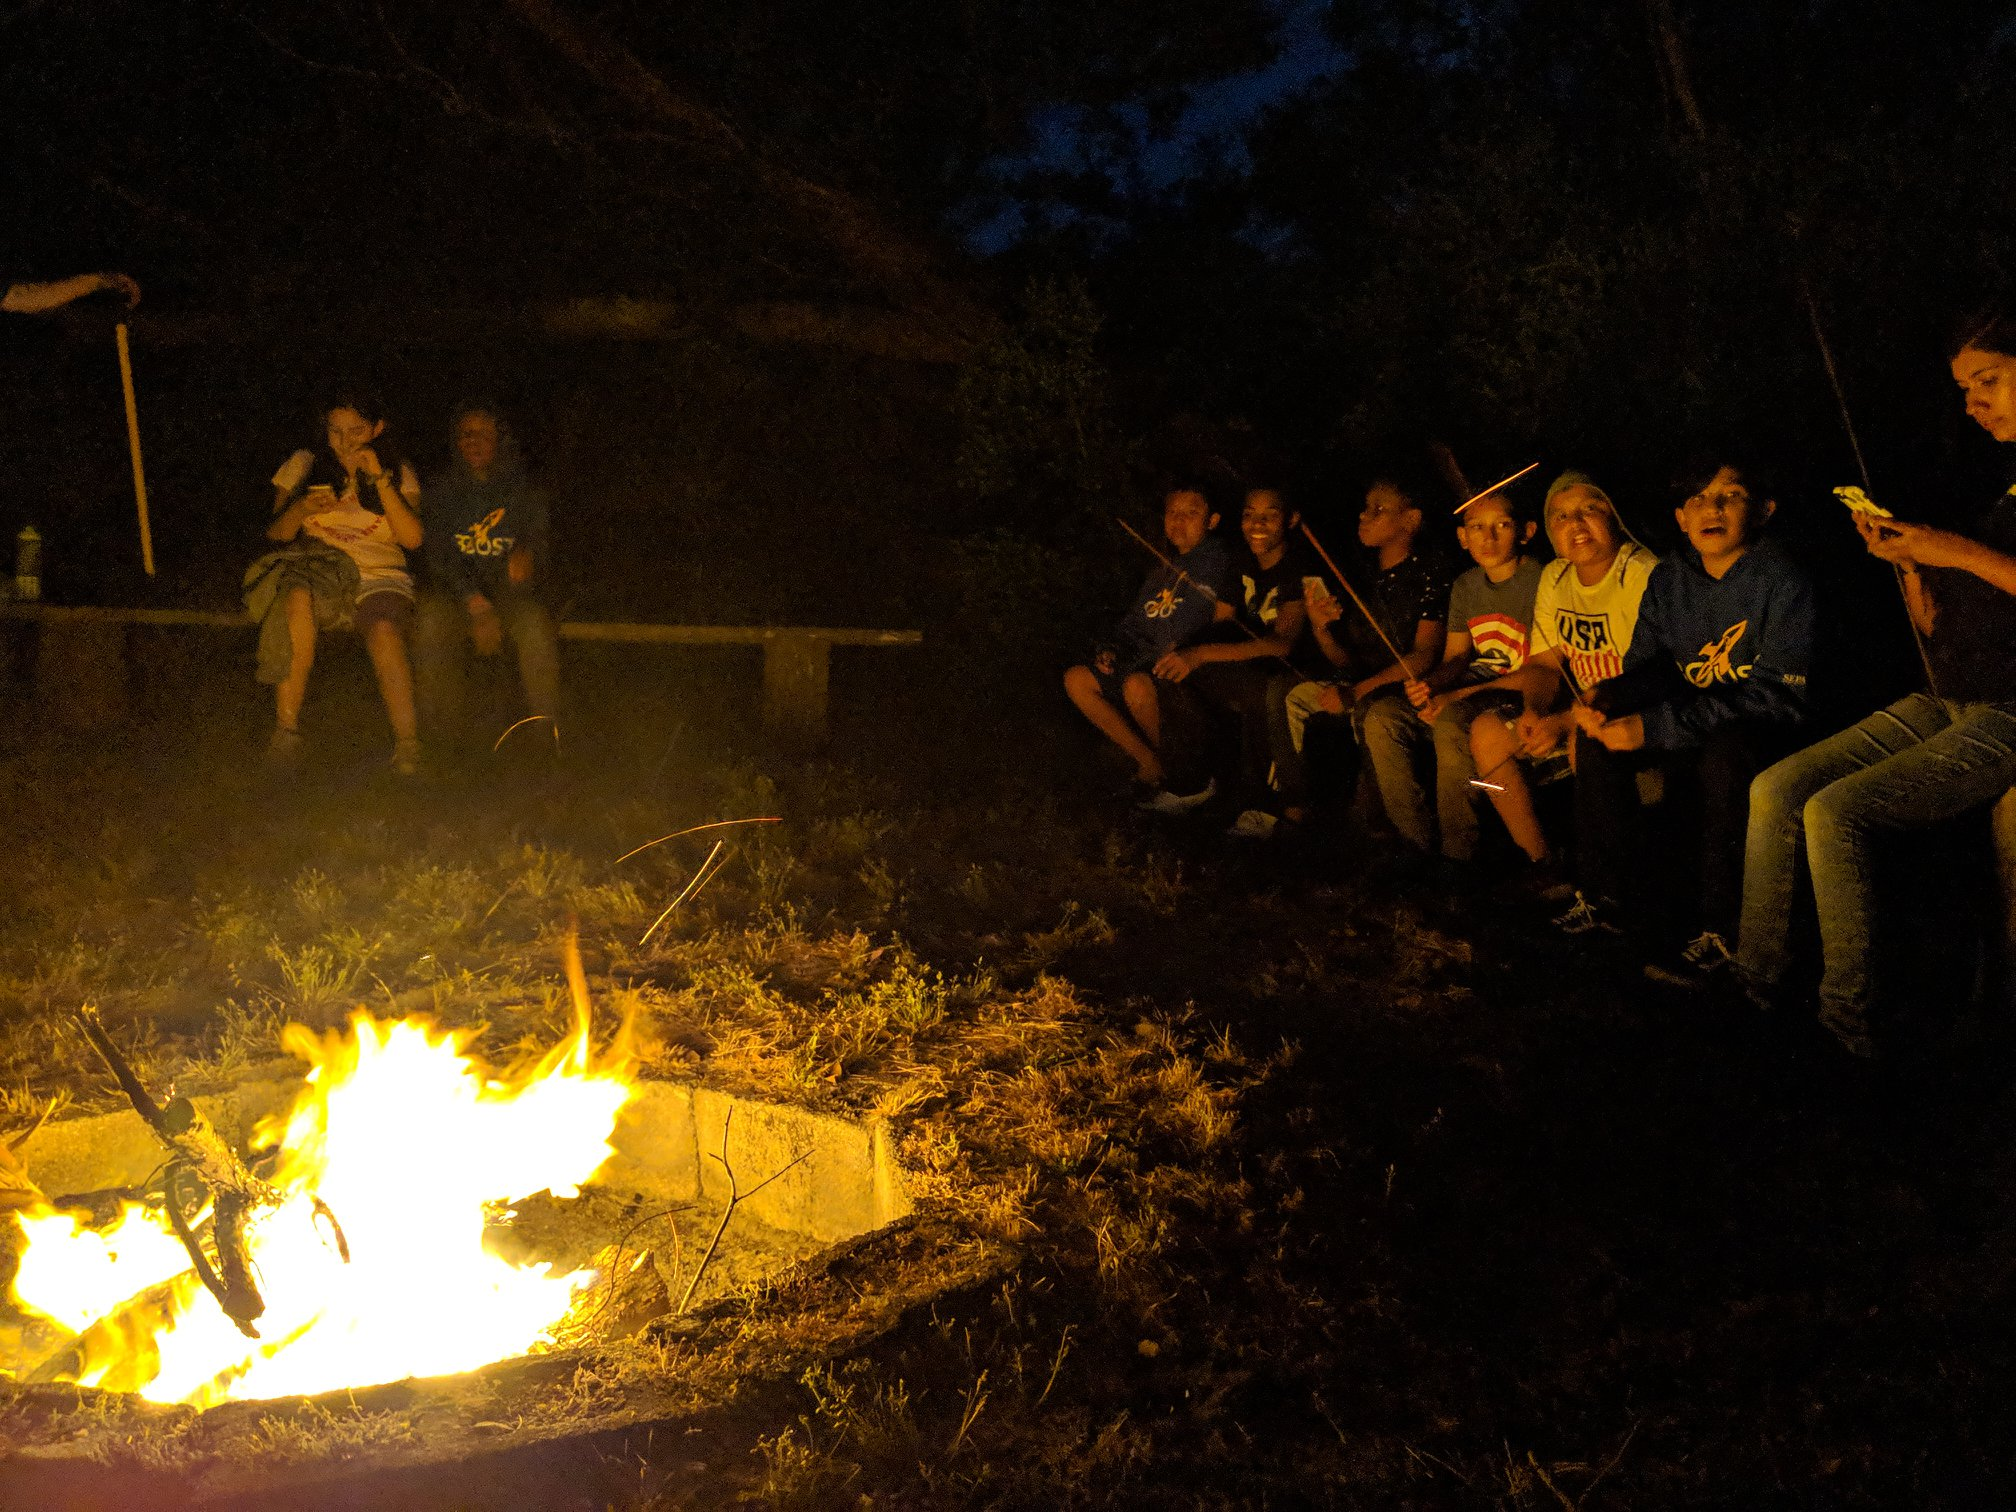 BOOST scholars tell stories around the annual Trinity Center campfire